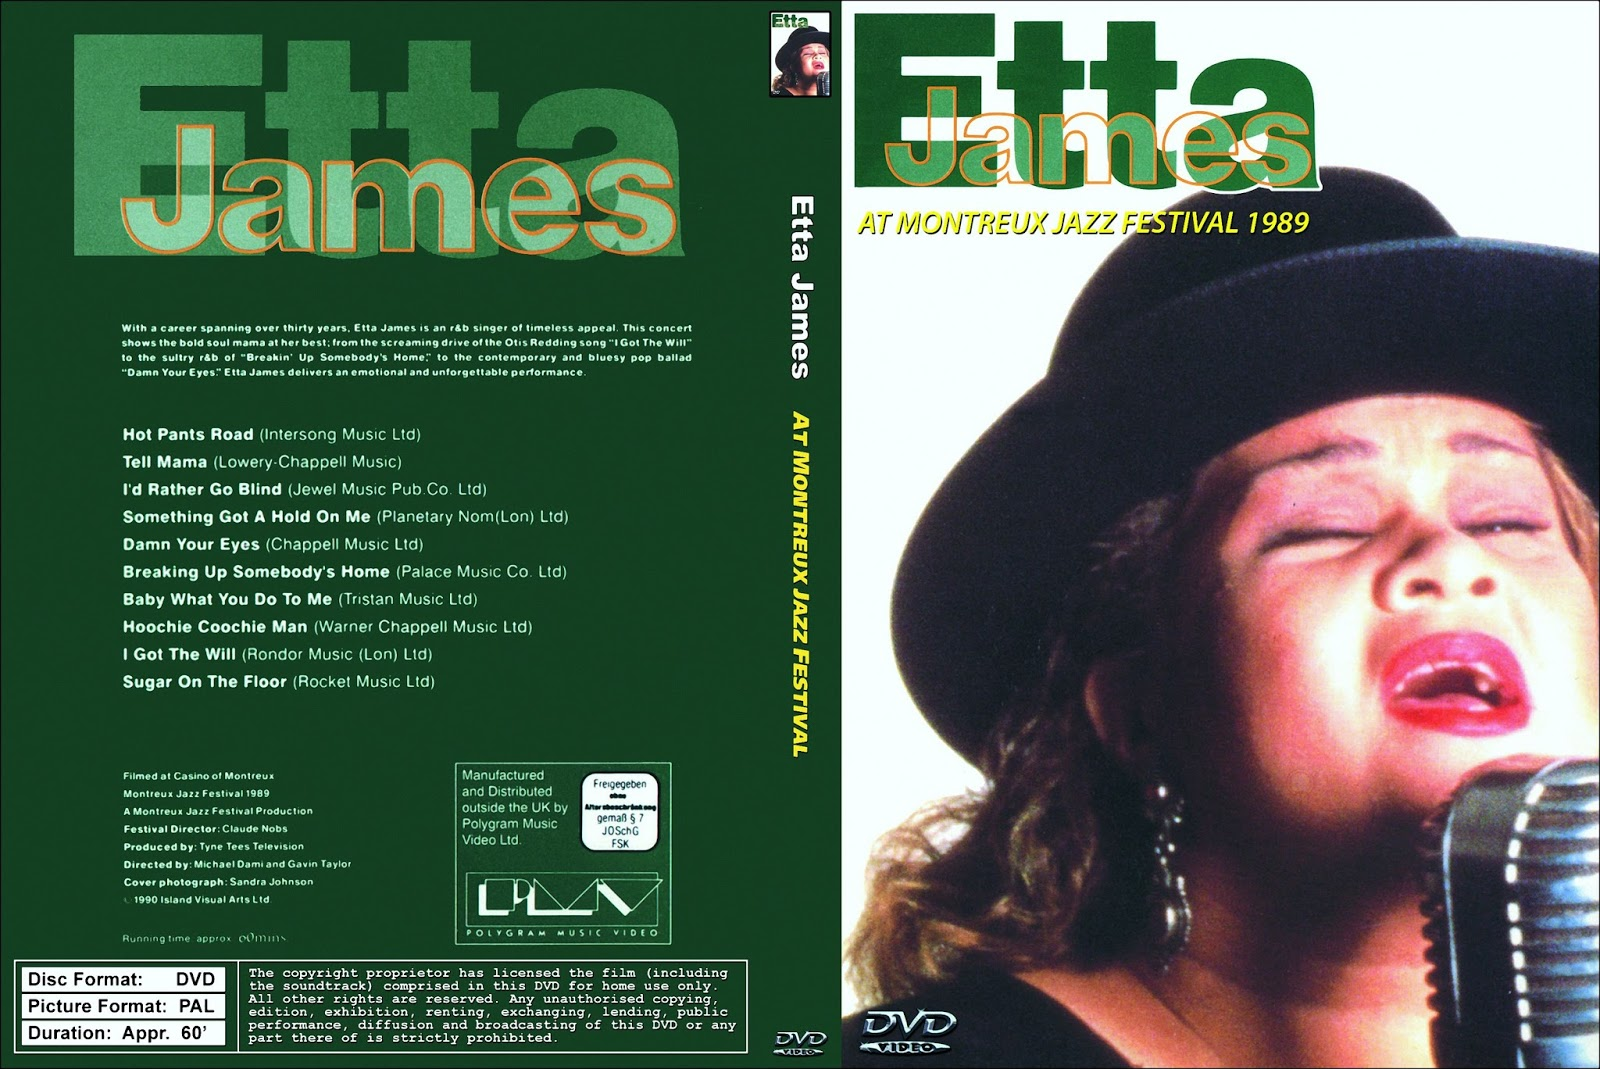 ETTA JAMES On DVD